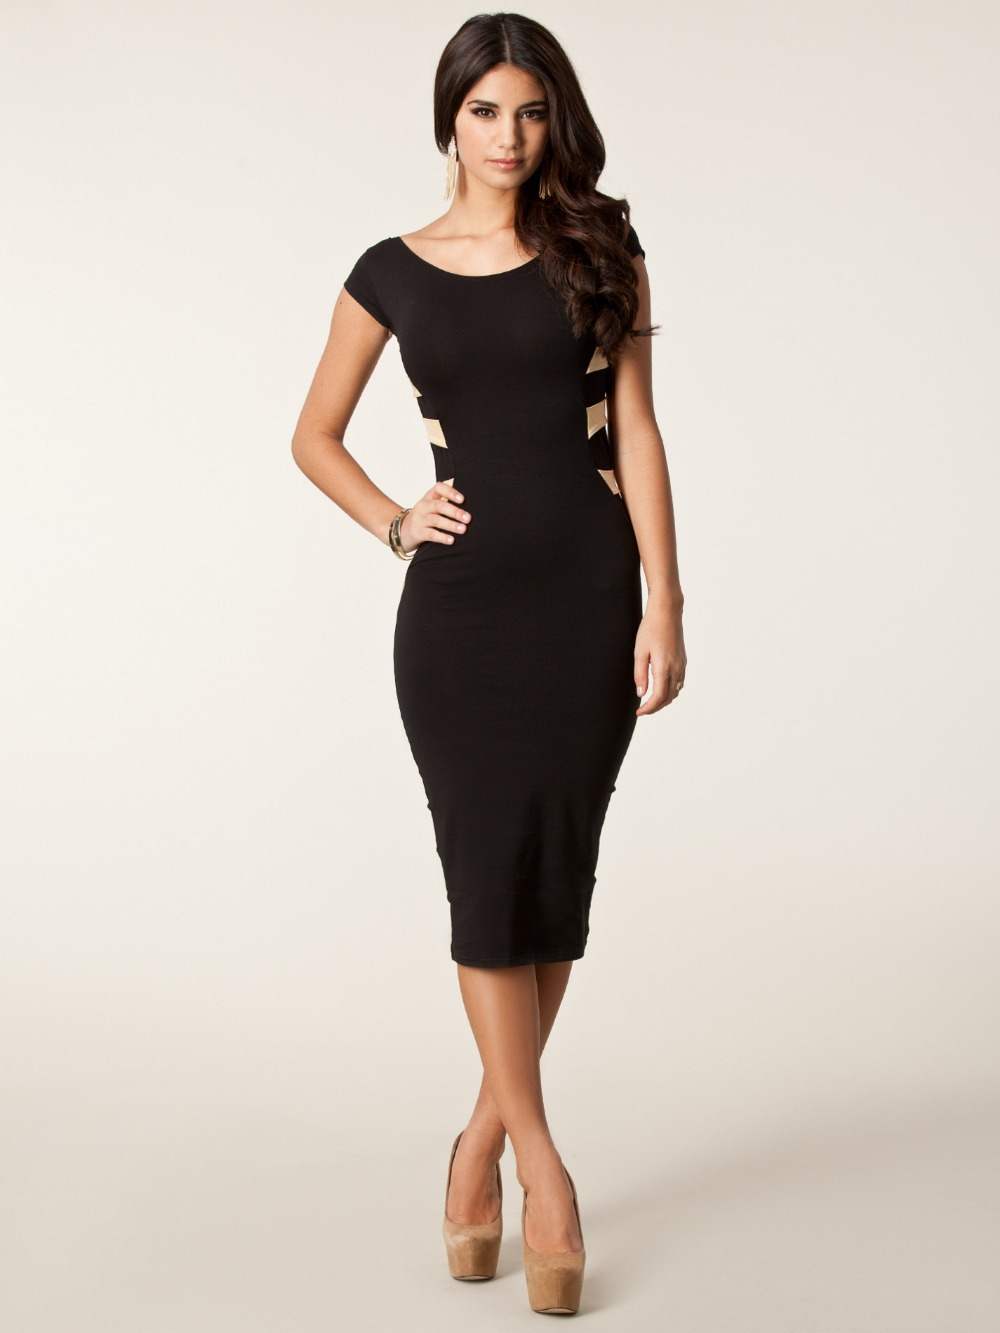 Compare Prices on Discount Black Dresses- Online Shopping/Buy Low ...